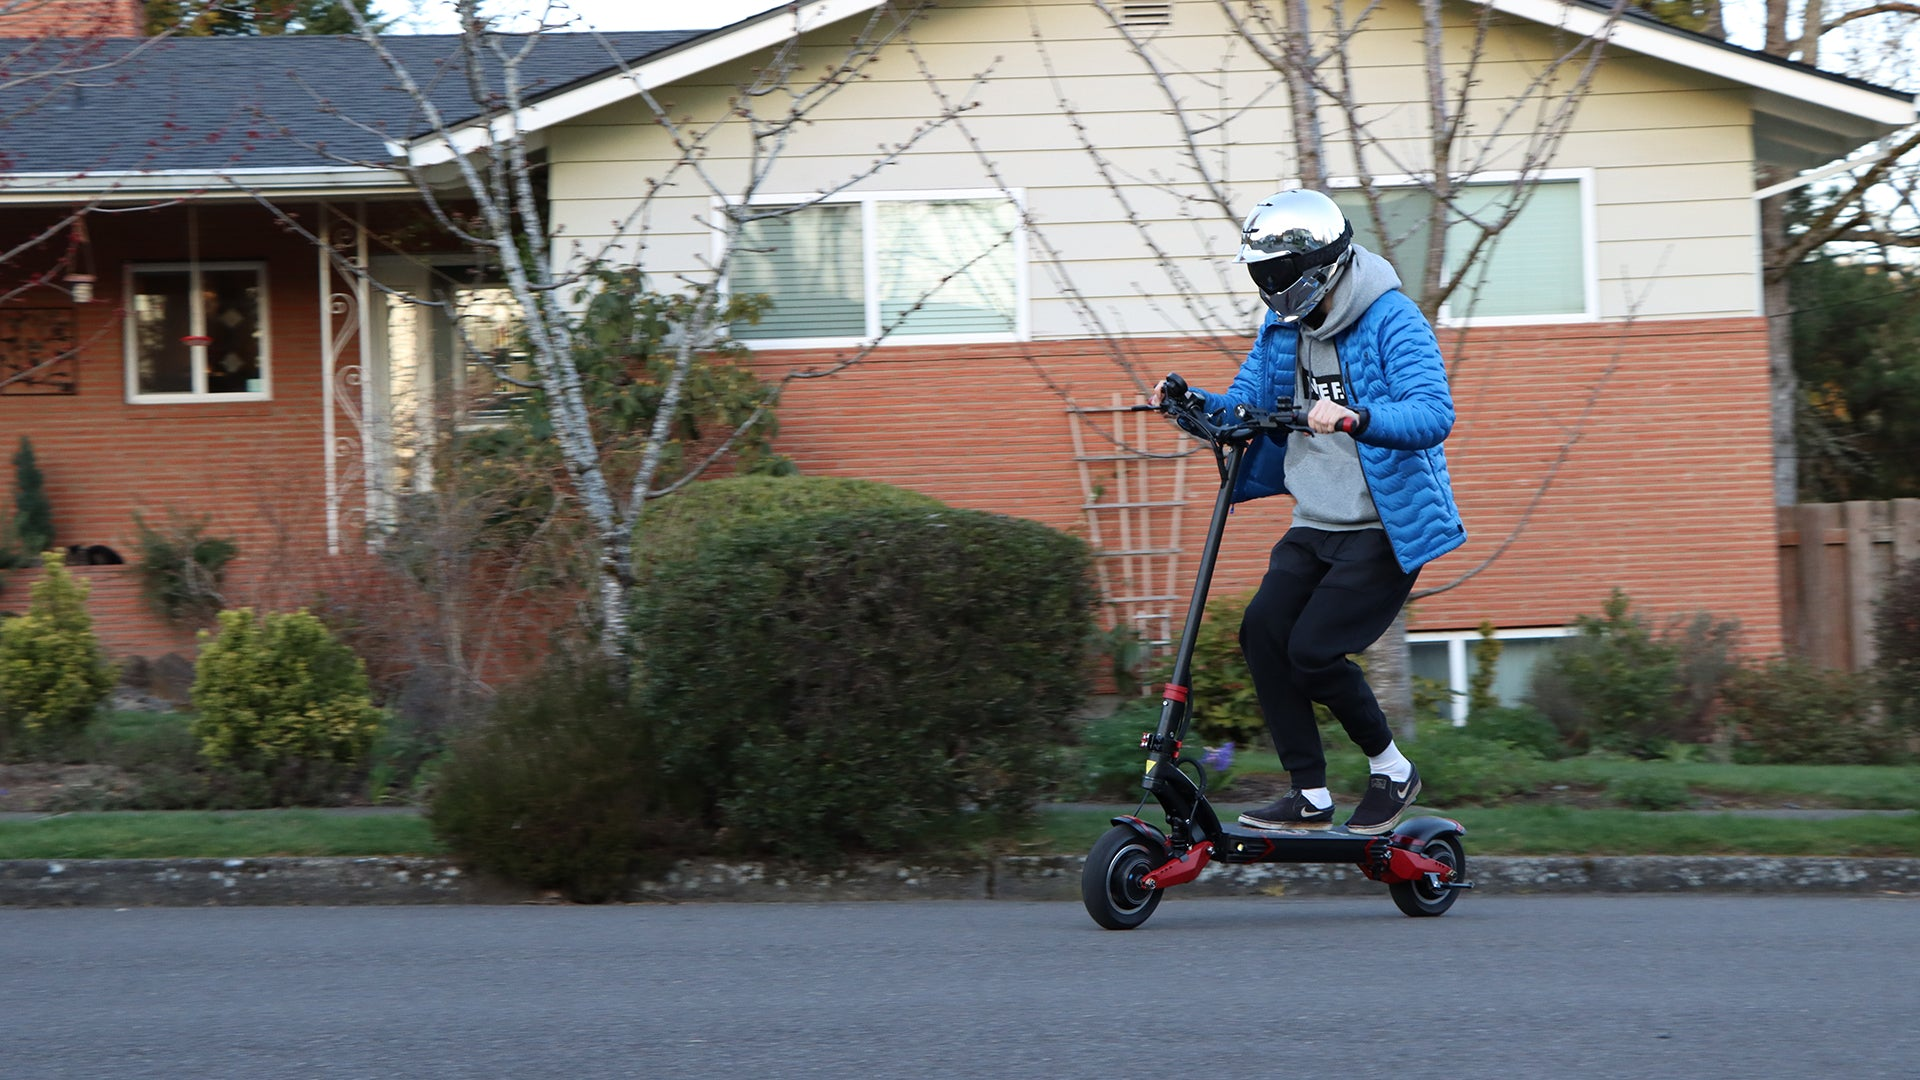 go-around-town-with-best-off-road-electric-scooter